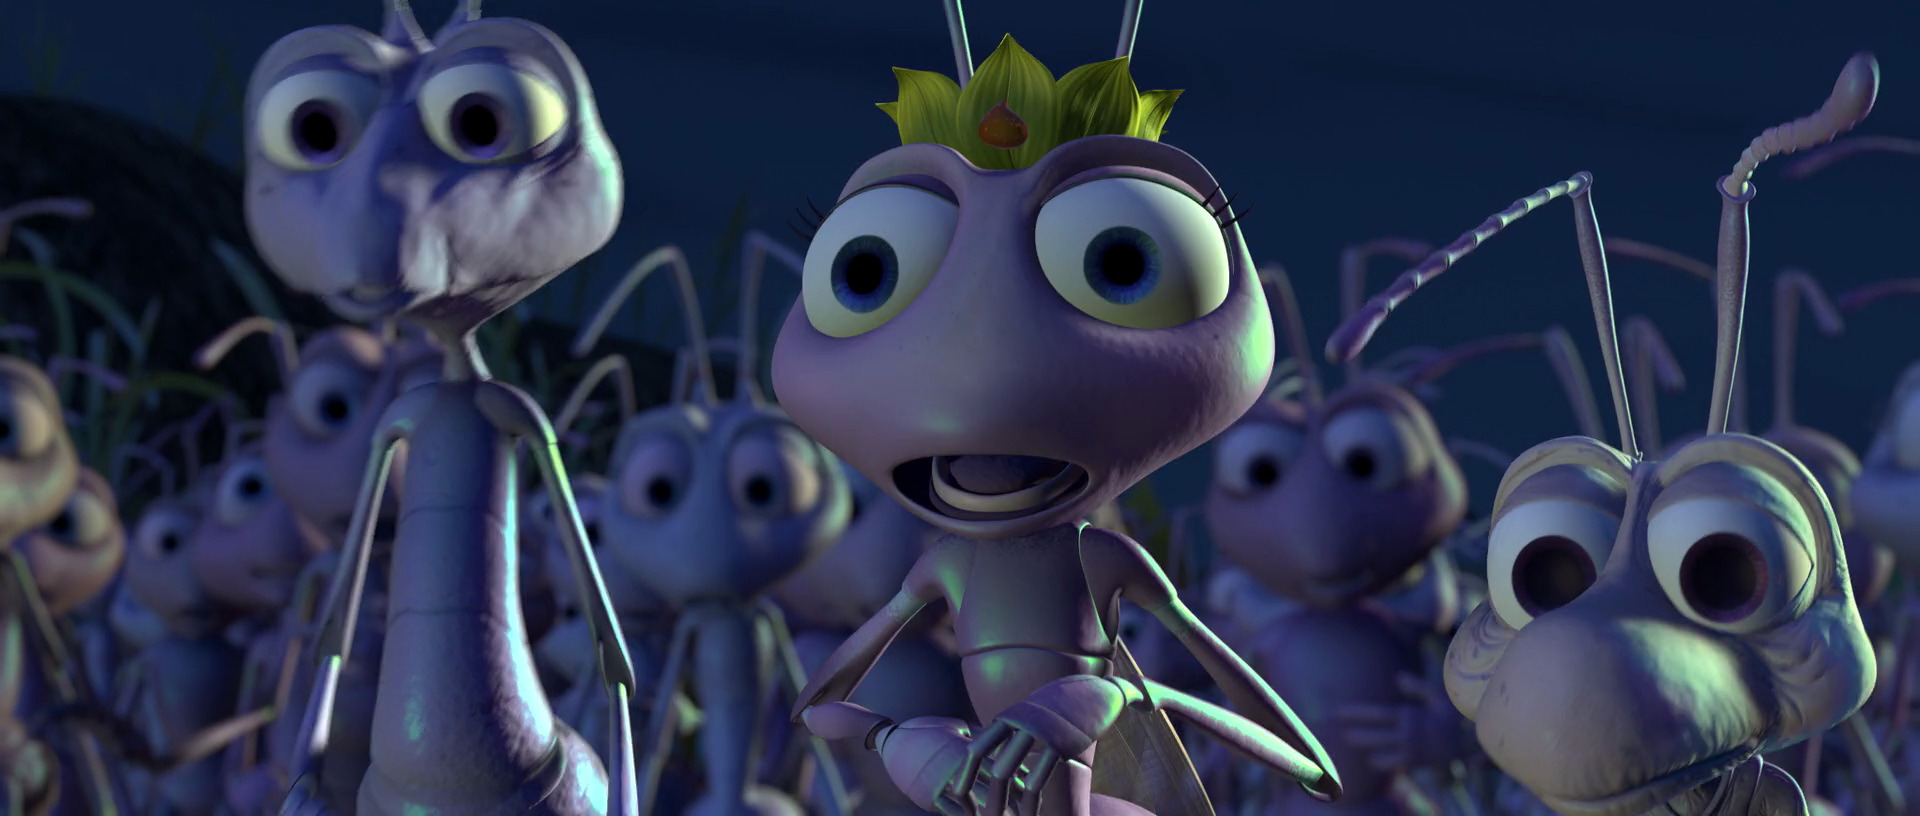 econmic concepts in a bugs life Find and save ideas about a bug's life on pinterest | see more ideas about cycle of life, life of a butterfly and useful life.